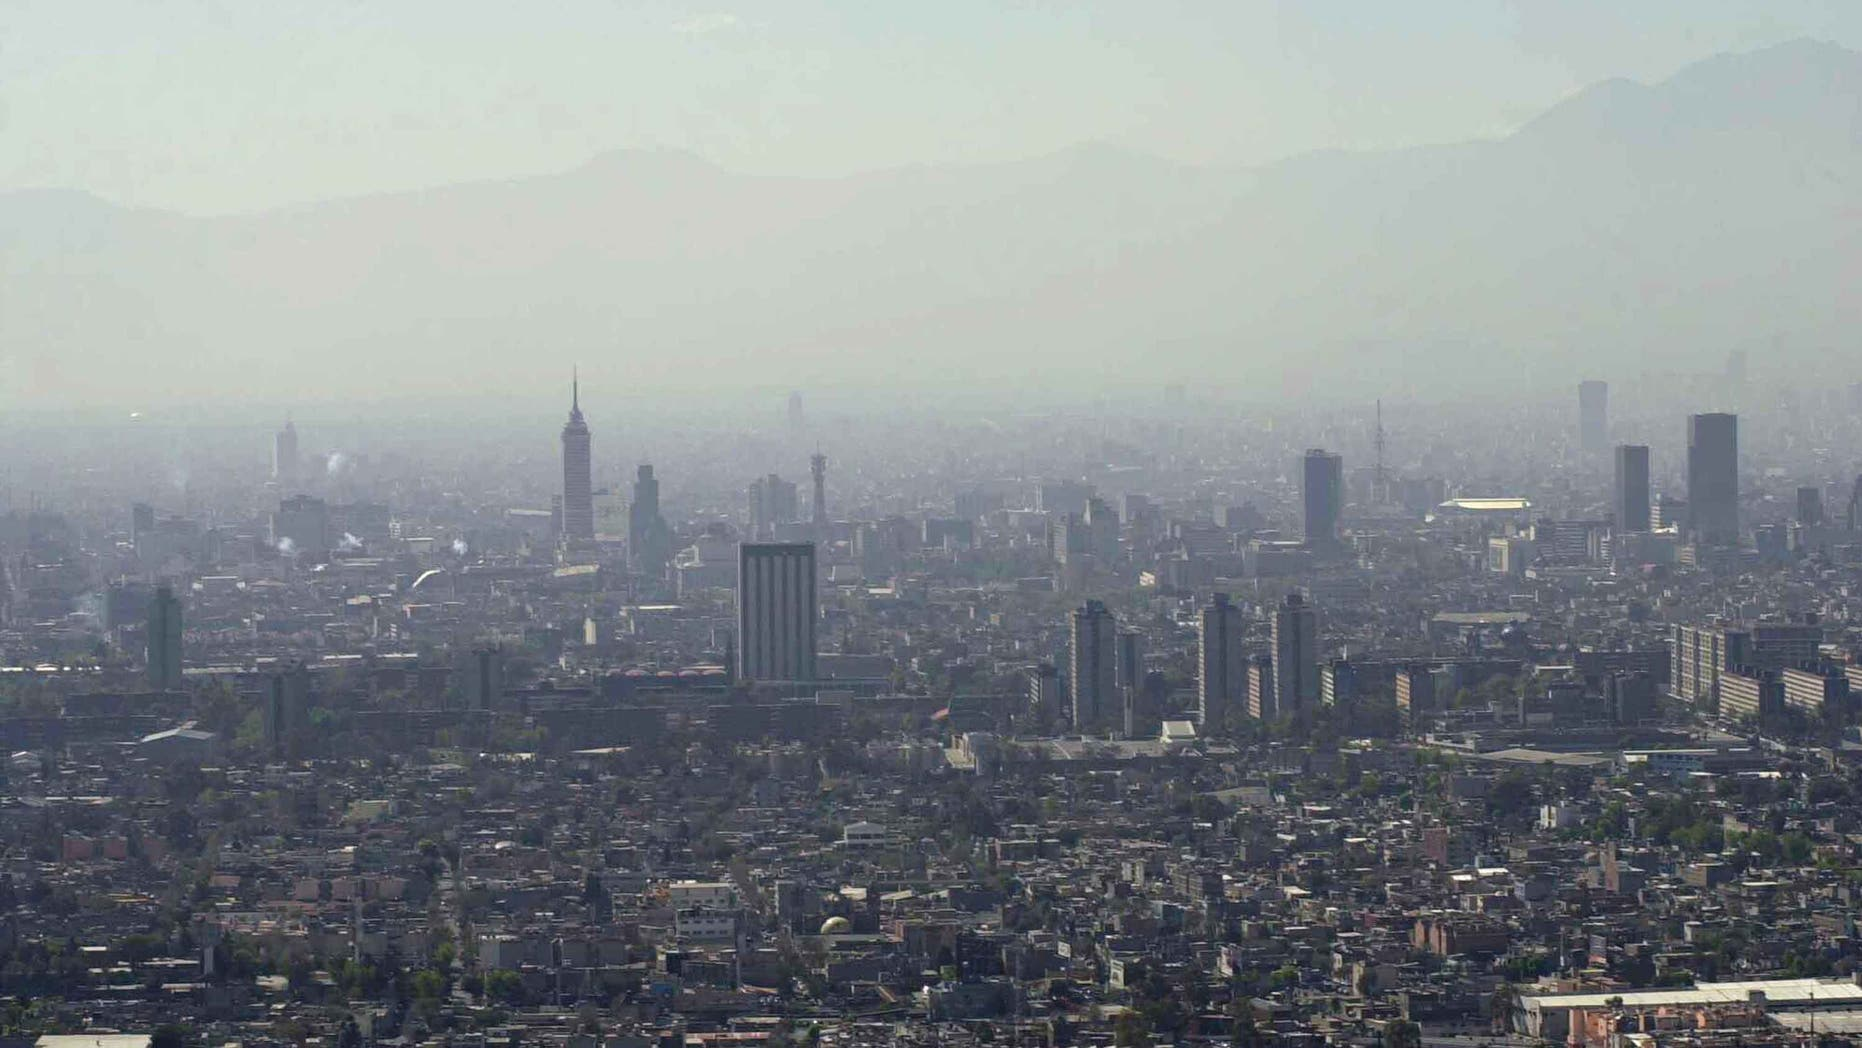 An aerial early morning view of Mexico City.